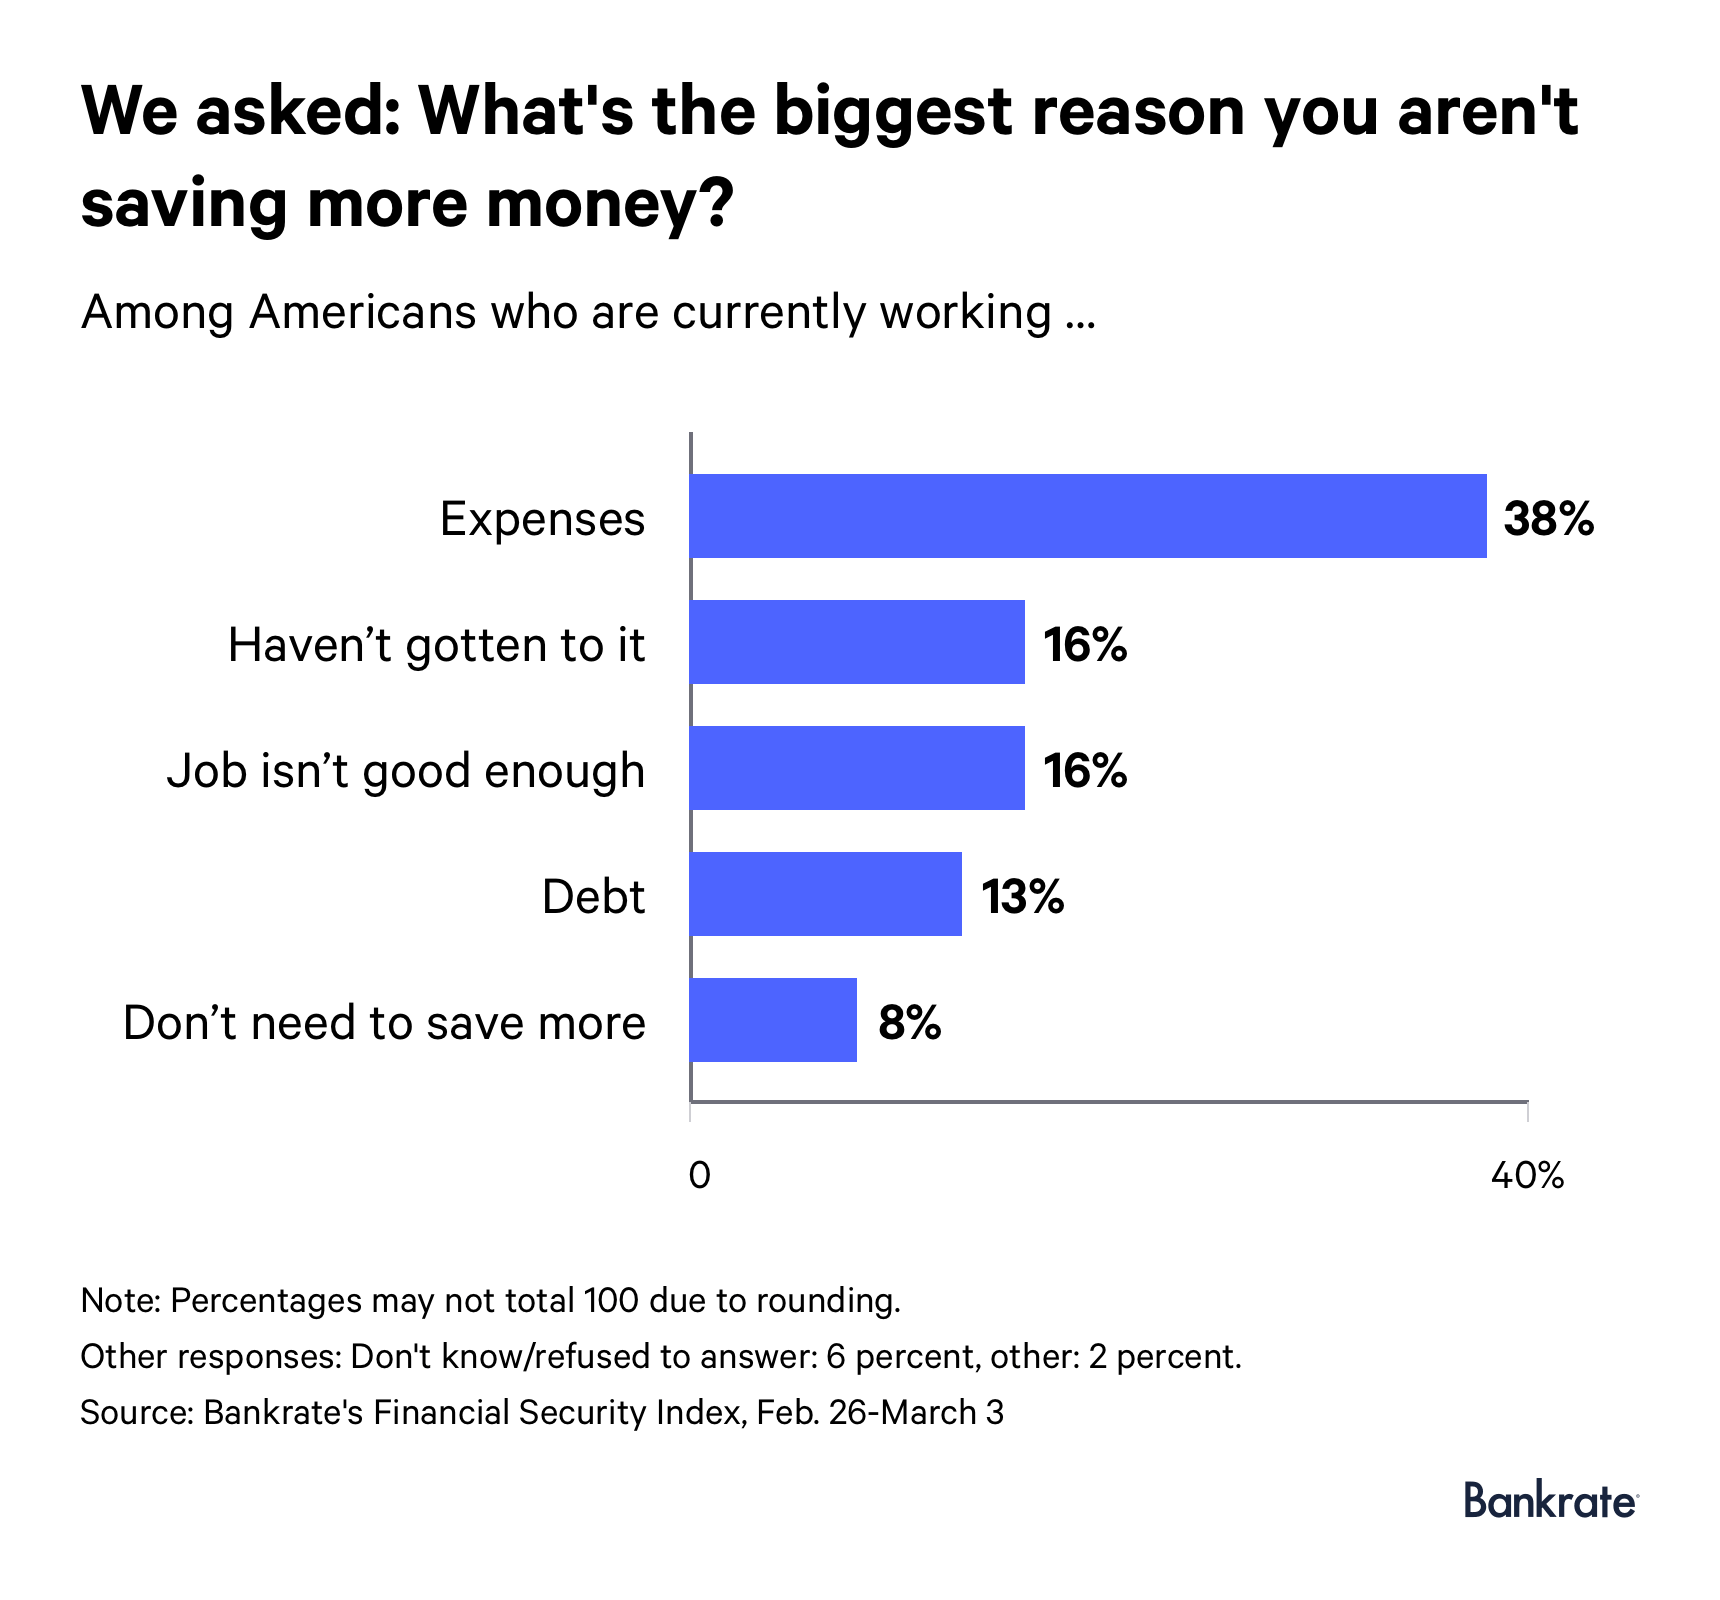 Graph: 38% of working Americans say expenses is the biggest reason they aren't saving more money